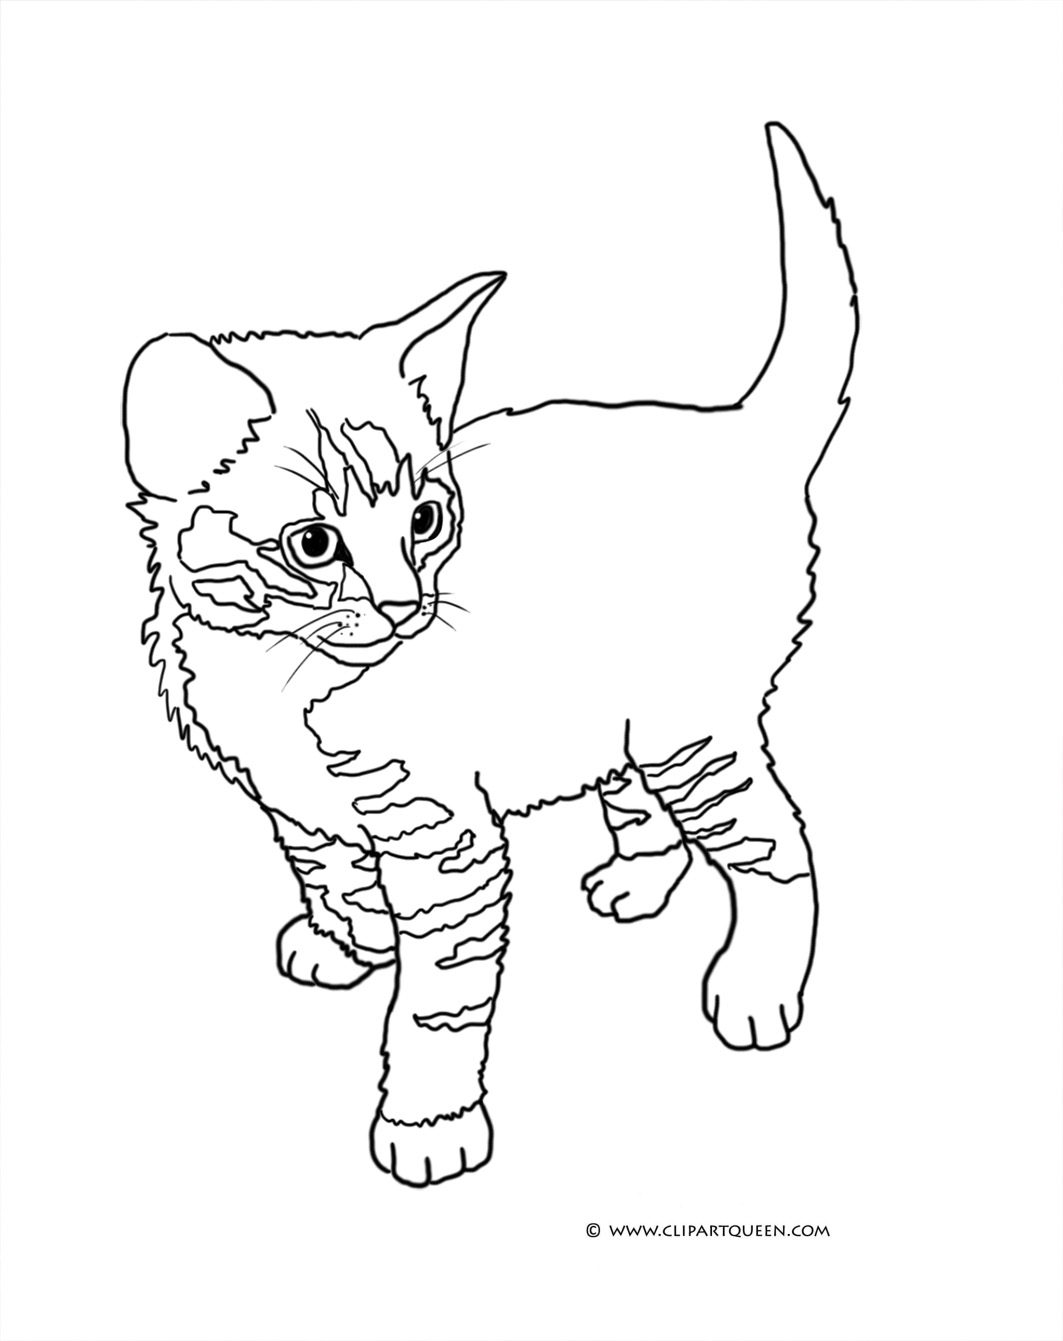 Kittens Drawing at GetDrawings.com | Free for personal use Kittens ...